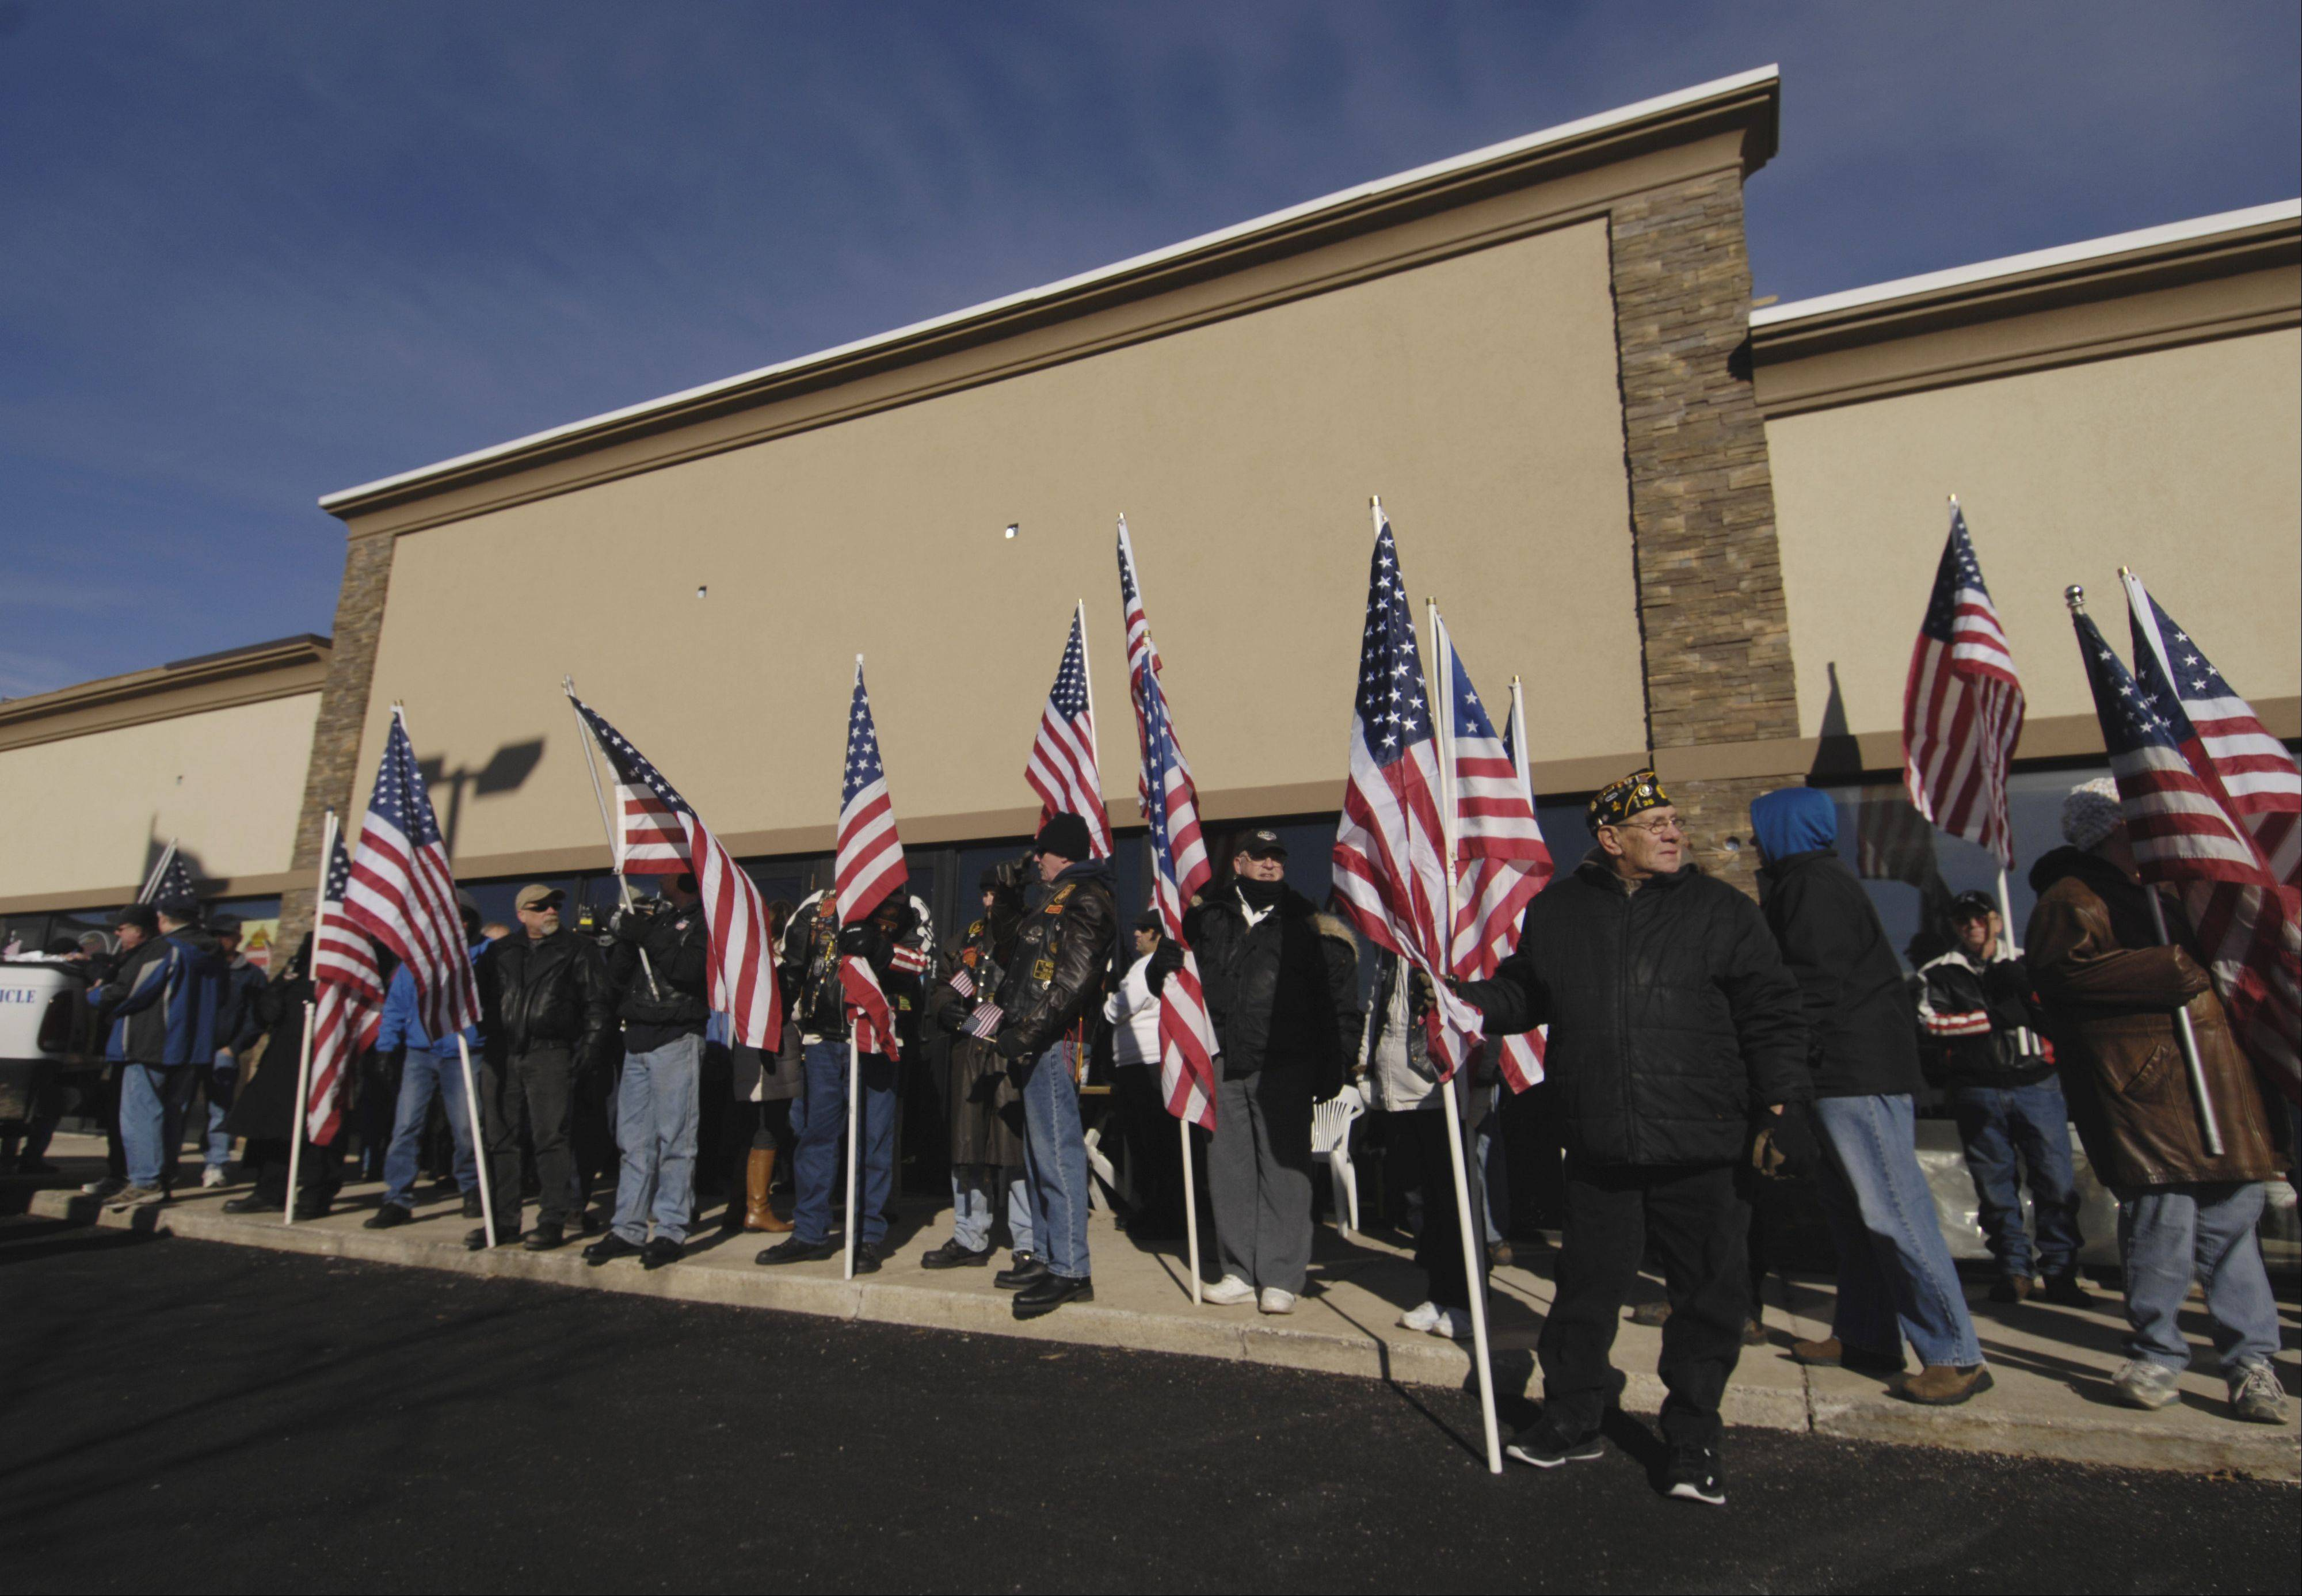 Supporters of the Glendale Heights VFW Post 2377 hold a rally yesterday in response to Midland Realty and Development's demand that the VFW stop flying the American and POW/MIA flags in front of their hall on Army Trail Road. The post has been flying a flag at the location since 1991.